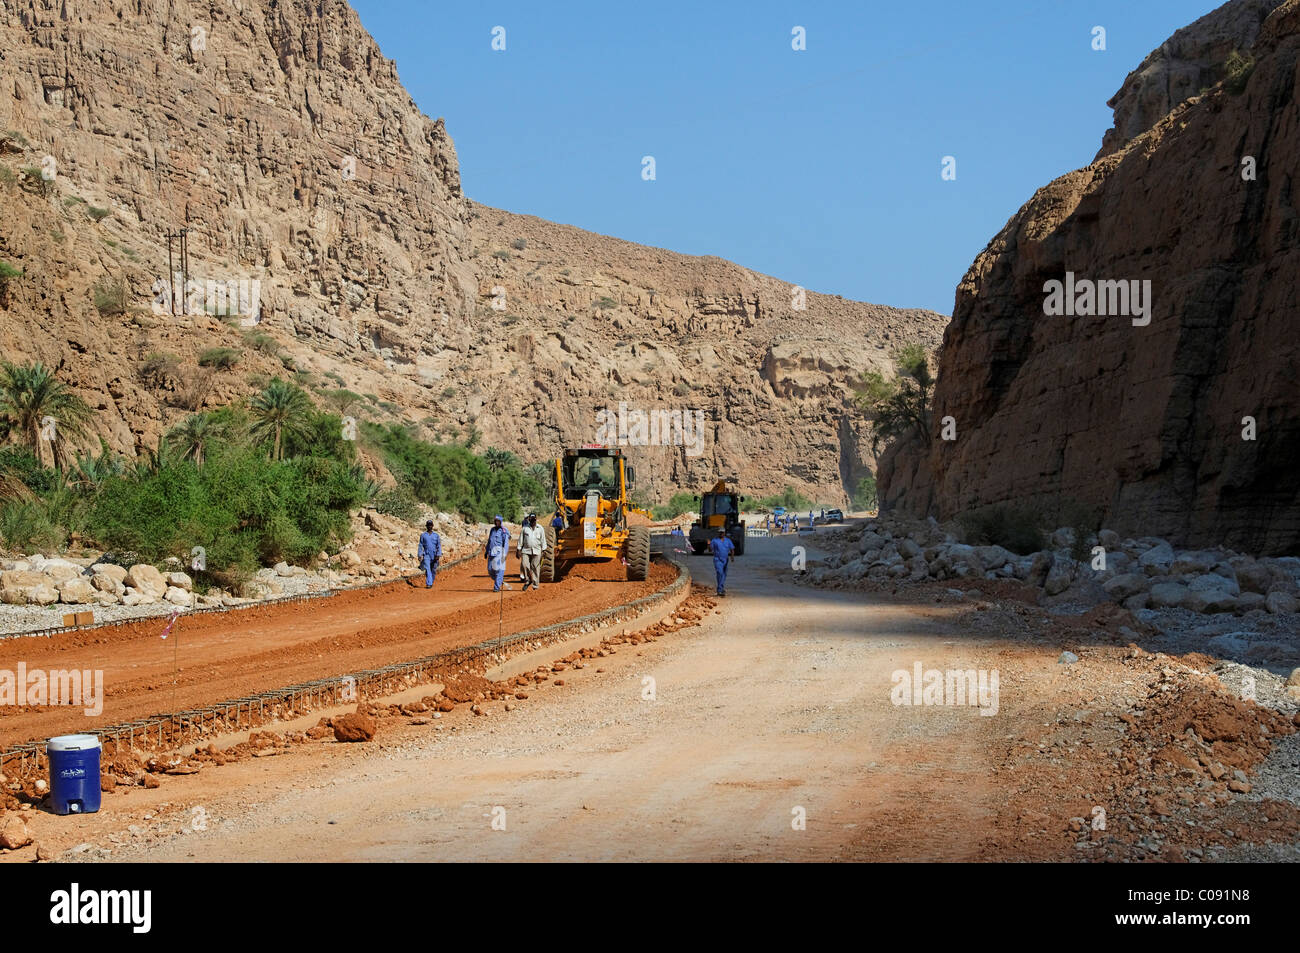 Road construction site, Wadi Tiwi, Oman, Middle East - Stock Image